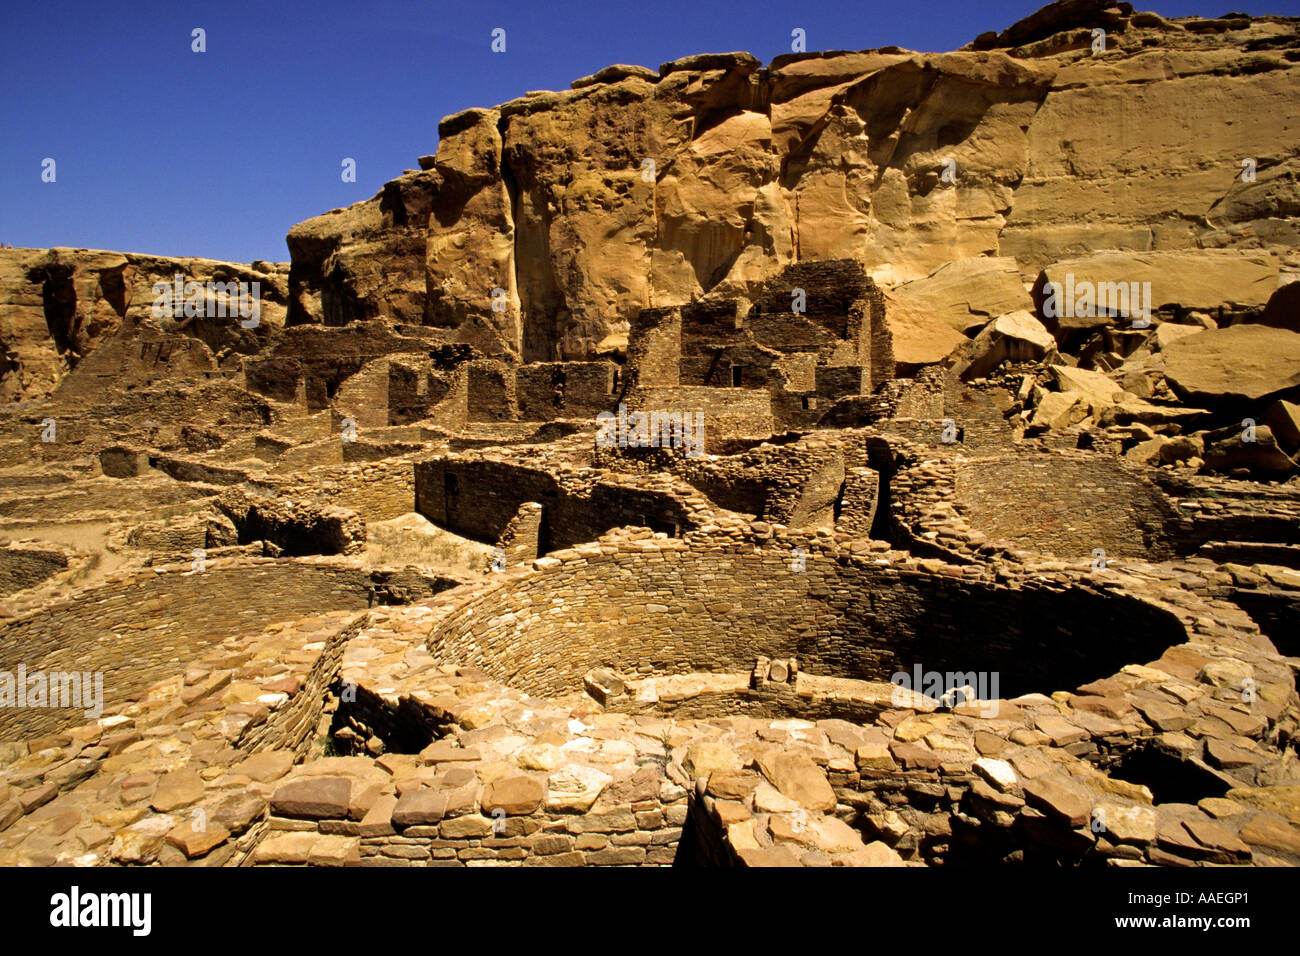 Chaco Culture National Historical Park Chaco Canyon New Mexico USA - Stock Image